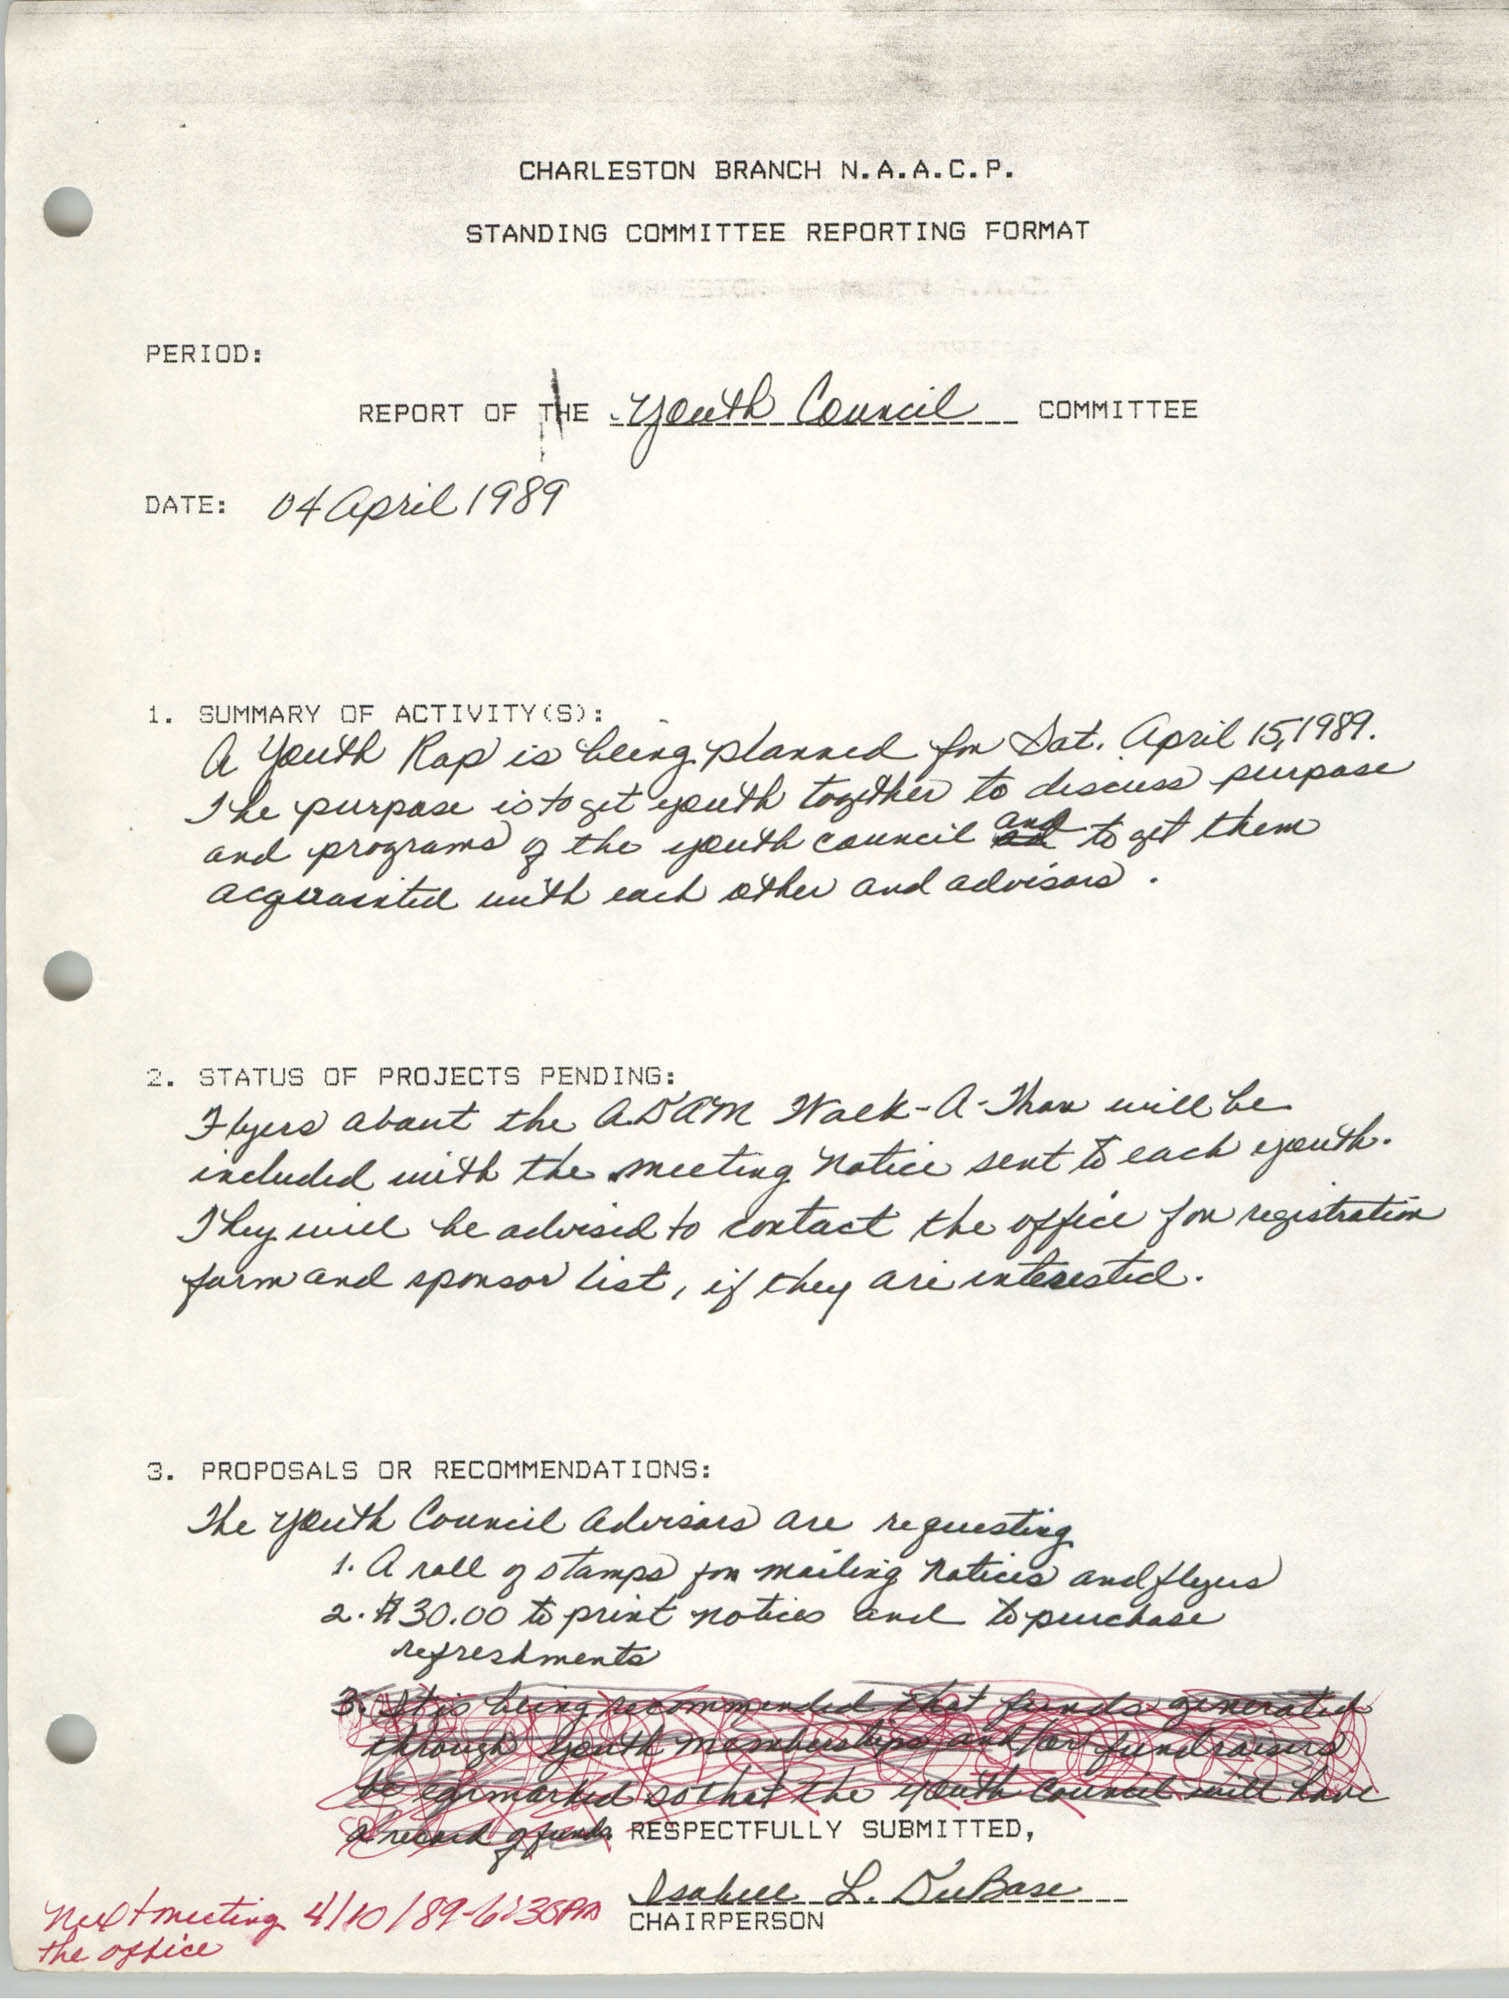 Standing Committee Reporting Format, Youth Council, Charleston Branch of the NAACP, April 4, 1989